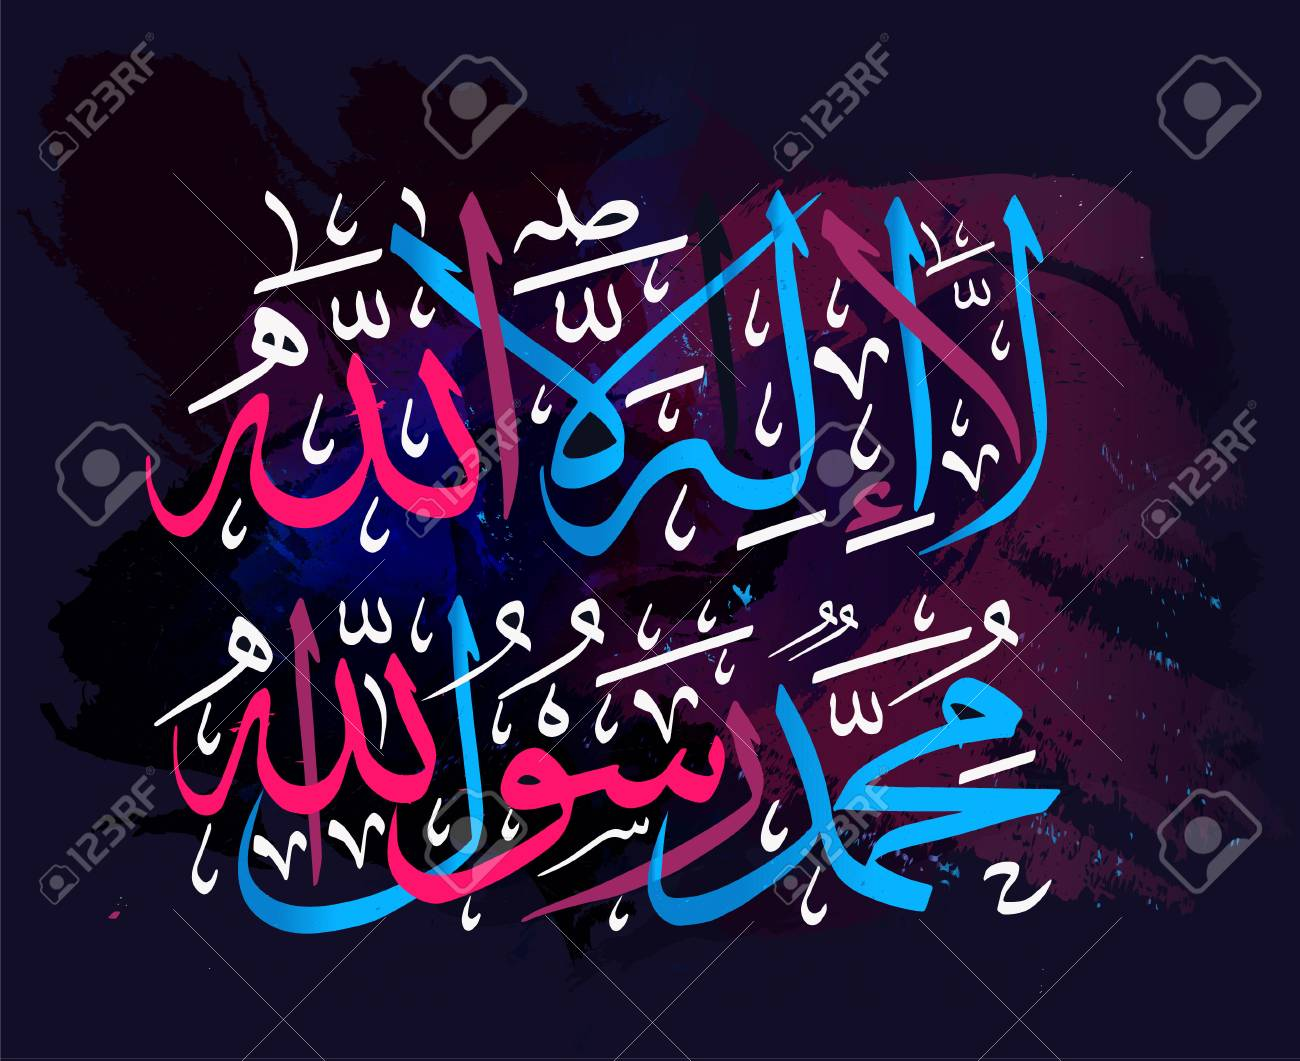 Arabic calligraphy of religious verses from Quran